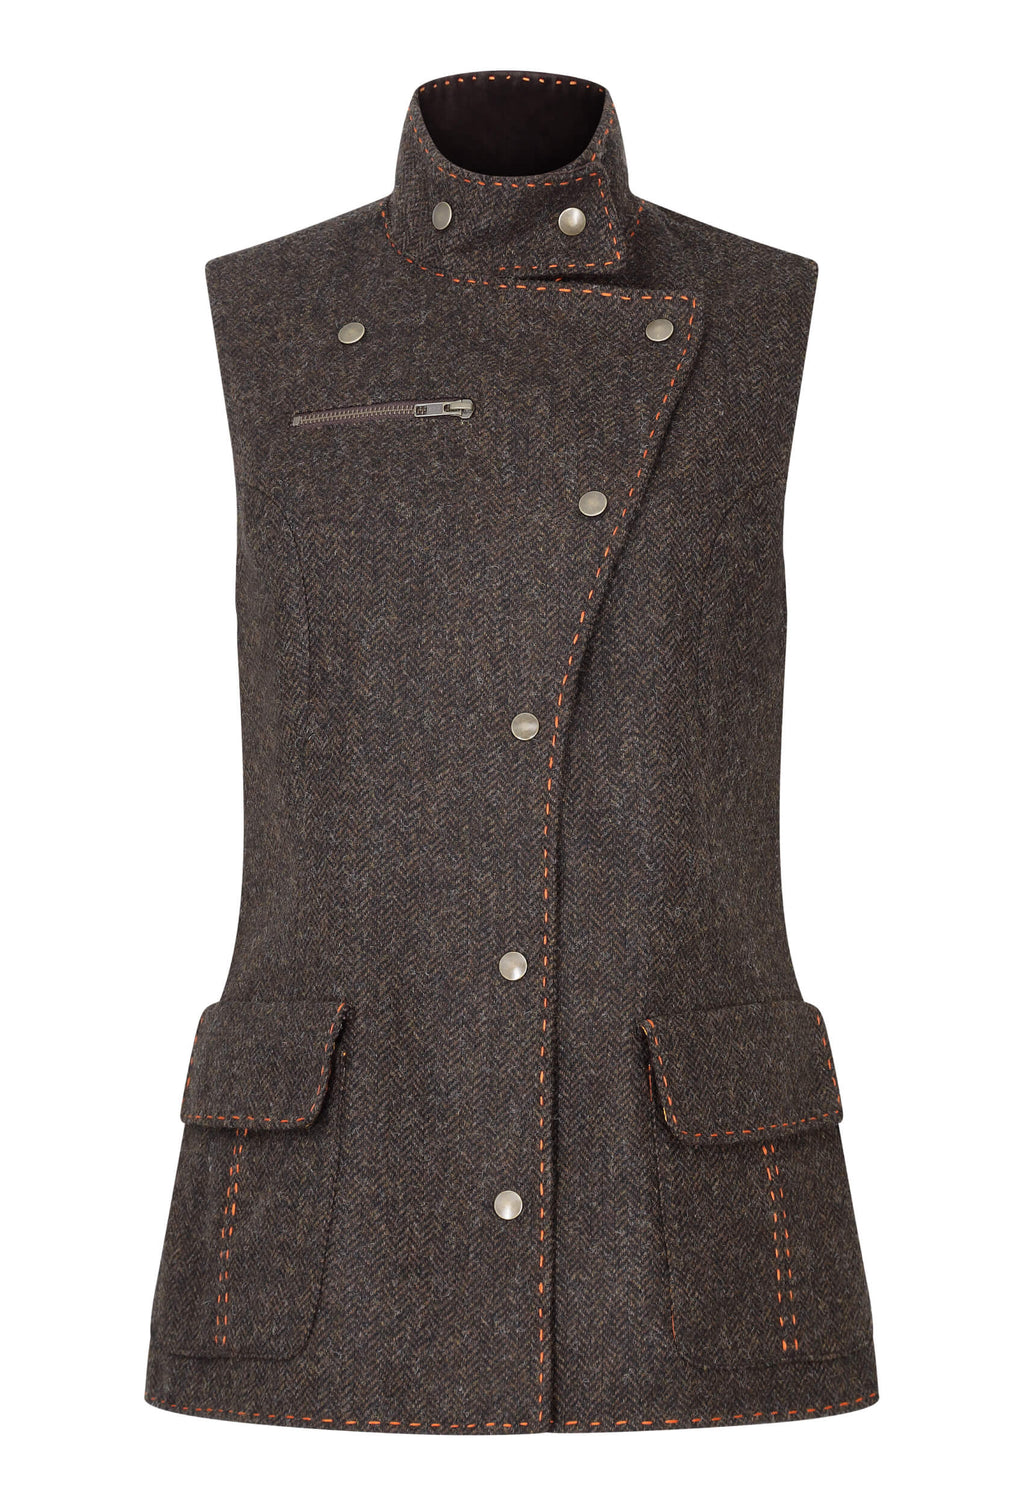 chocolate-brown-herringbone-tweed-fitted-womens-waistcoat-made-in-britain